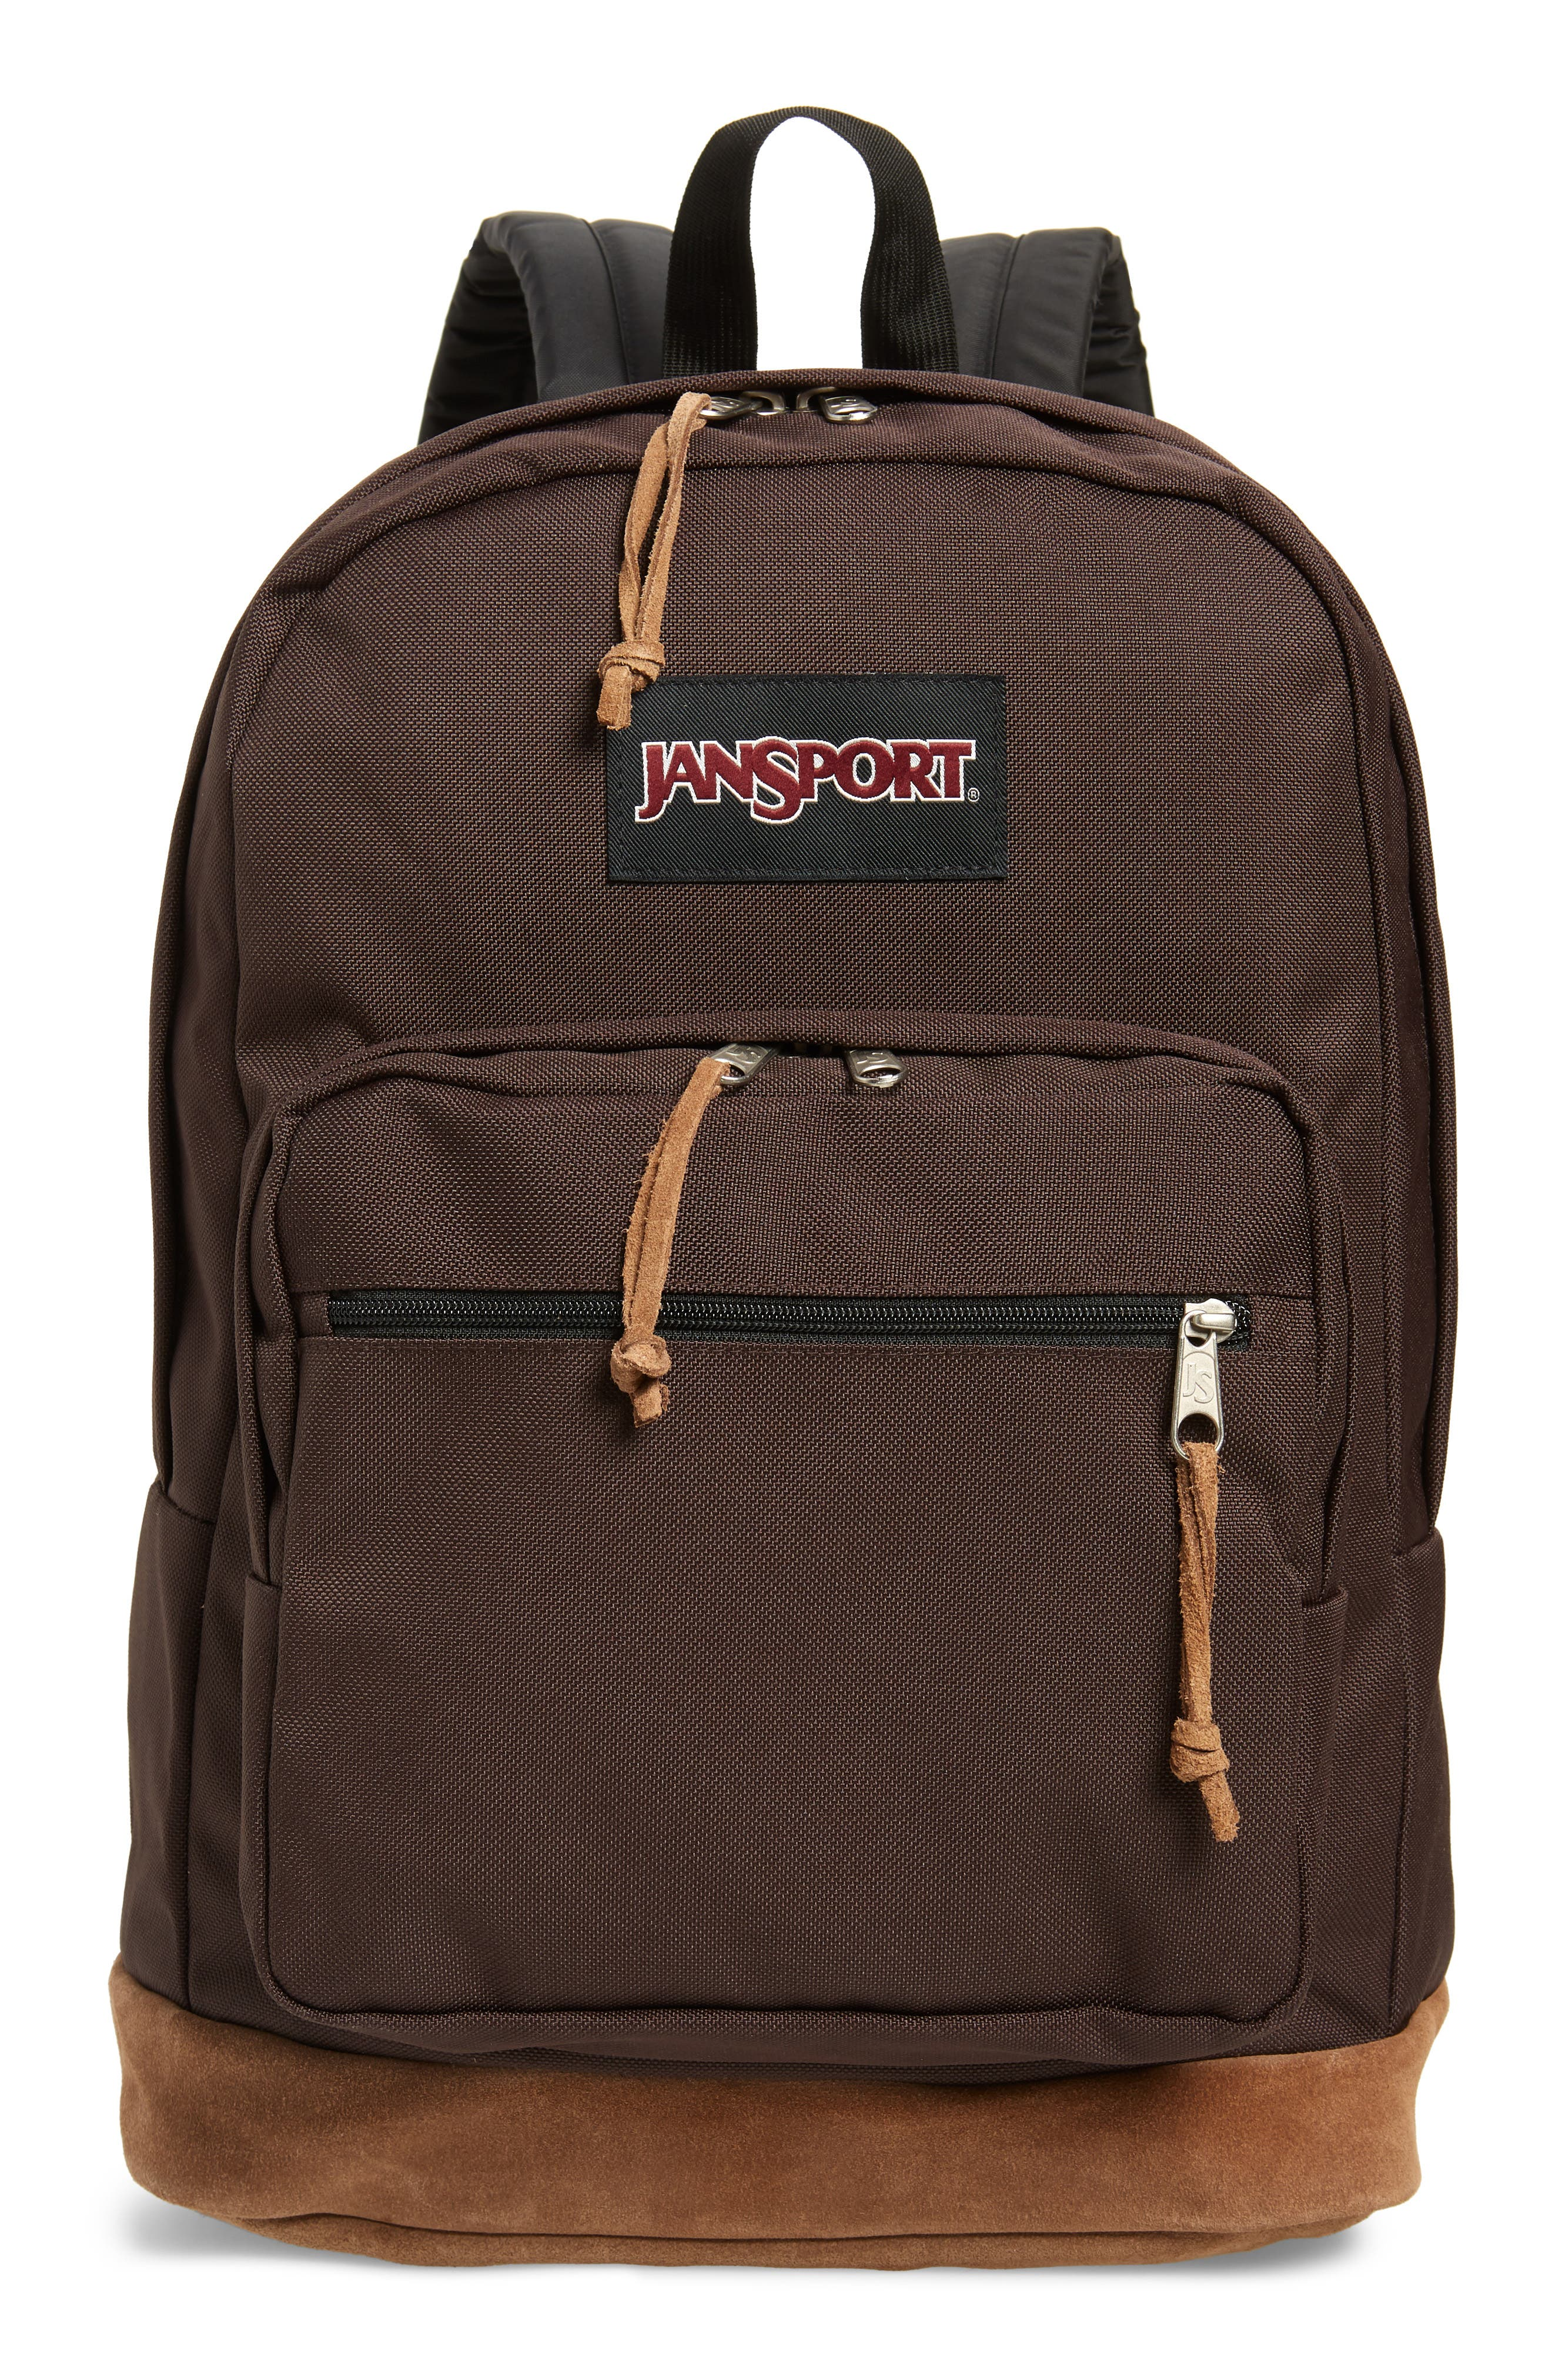 949b5b255 Jansport 'Right Pack' Backpack - Brown